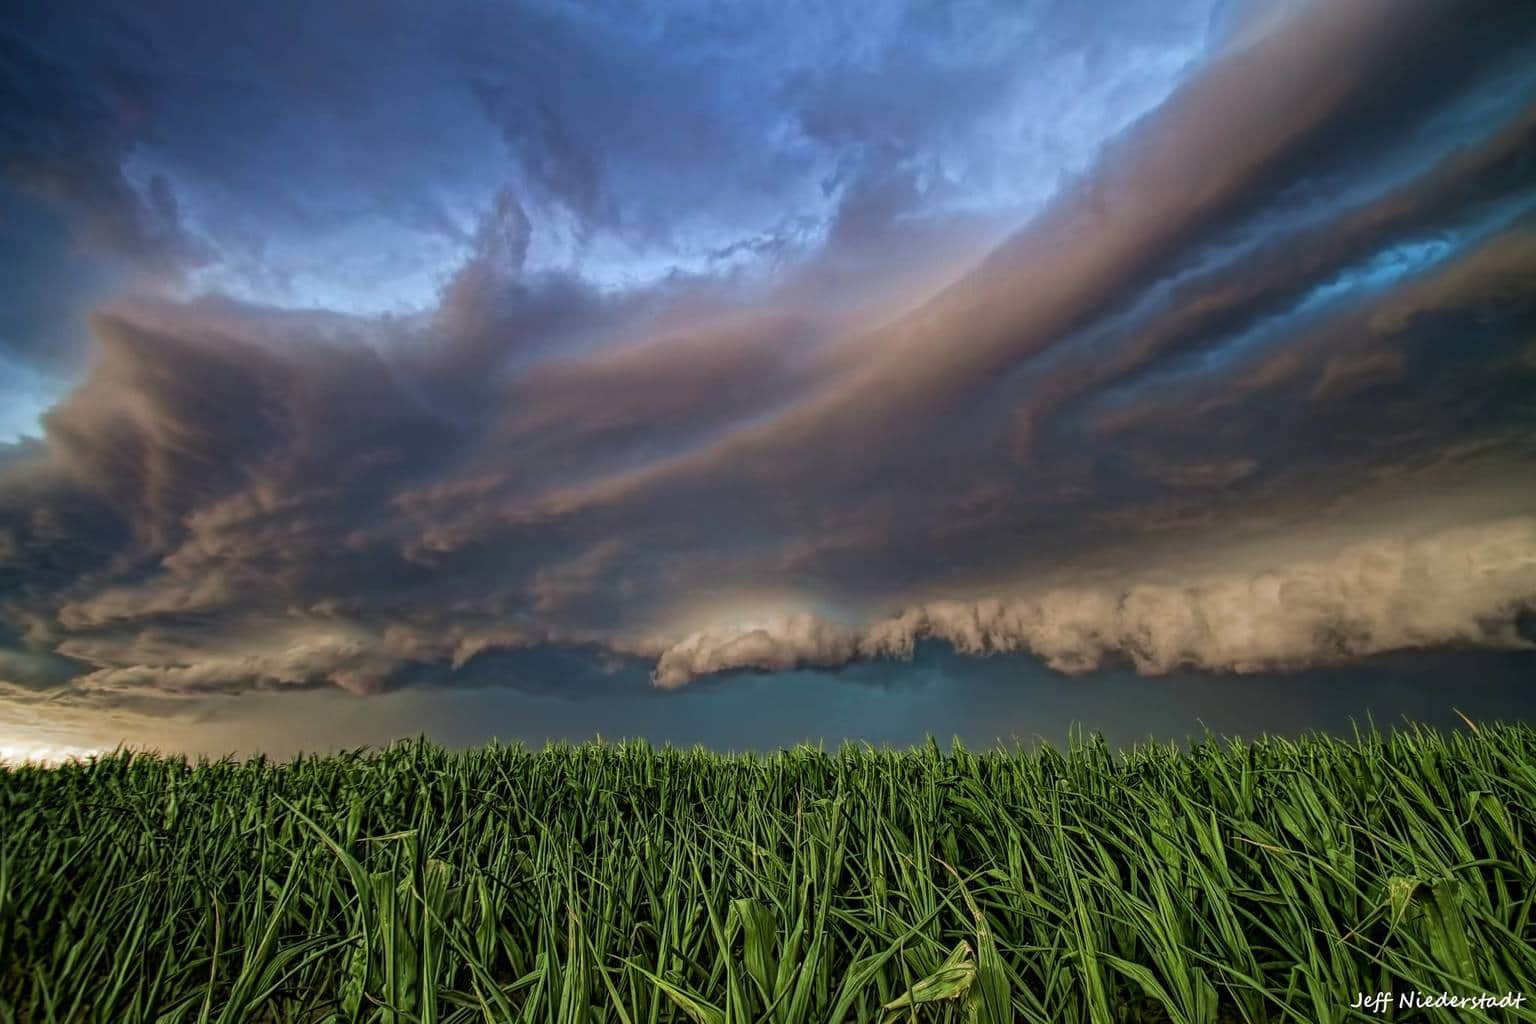 Near Fort Morgan,CO. Raced to try and get to the edge of this shelf cloud while trying to find something to add to the frame in the foreground. A corn field was the best I was able to do. This is one of my favorite photos from 2013. Canon T3 Tamron 10-24mm f/3.5 ISO 100 1/80s